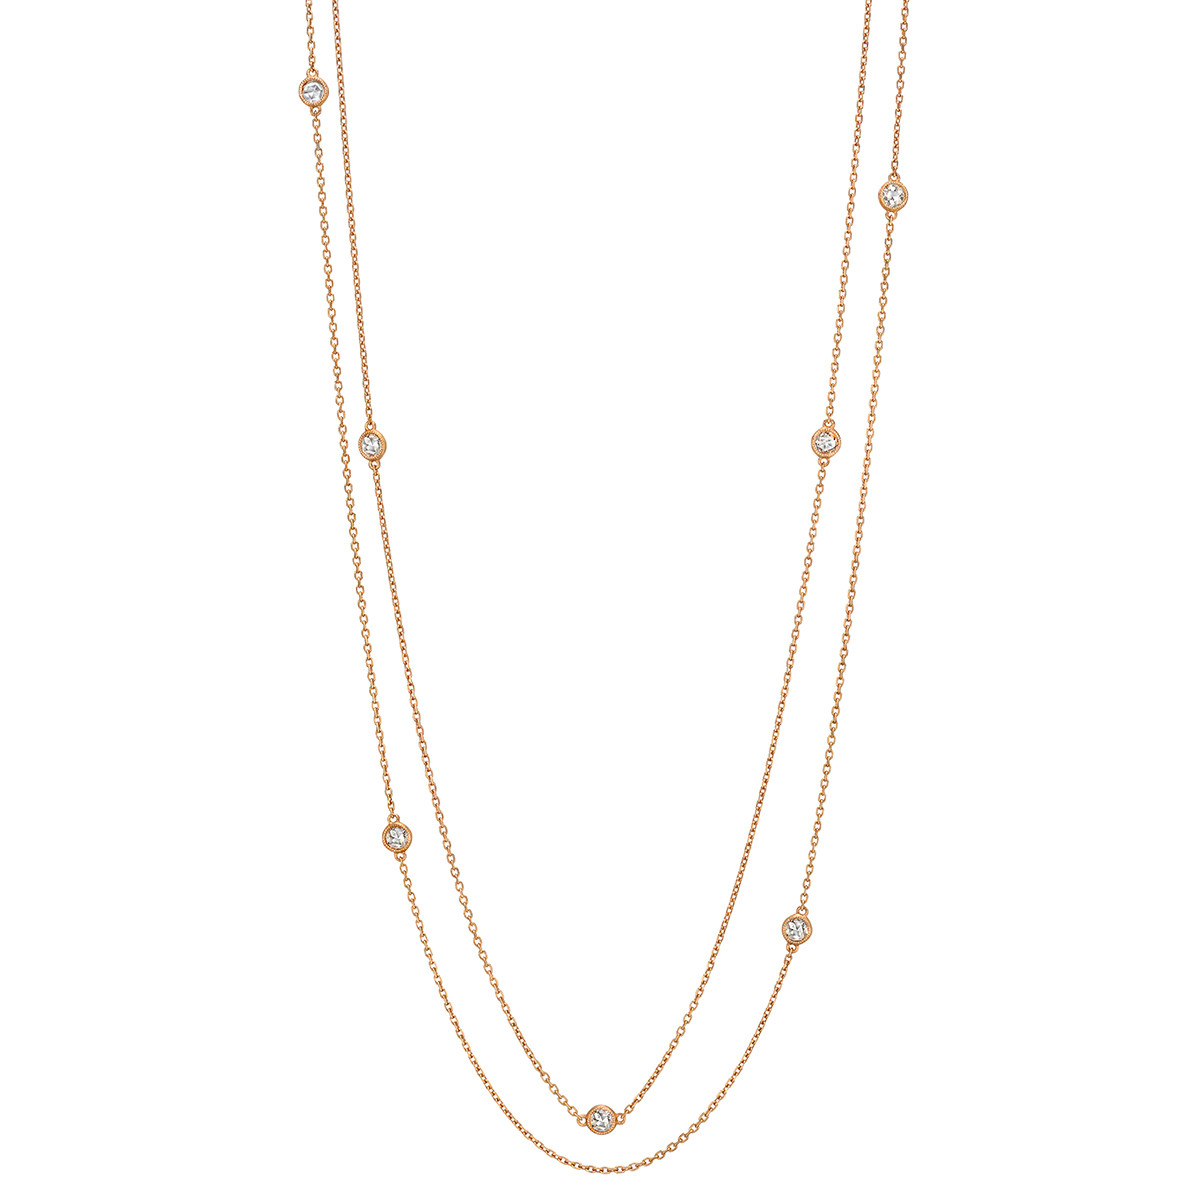 18k Pink Gold & Diamond Long Chain Necklace